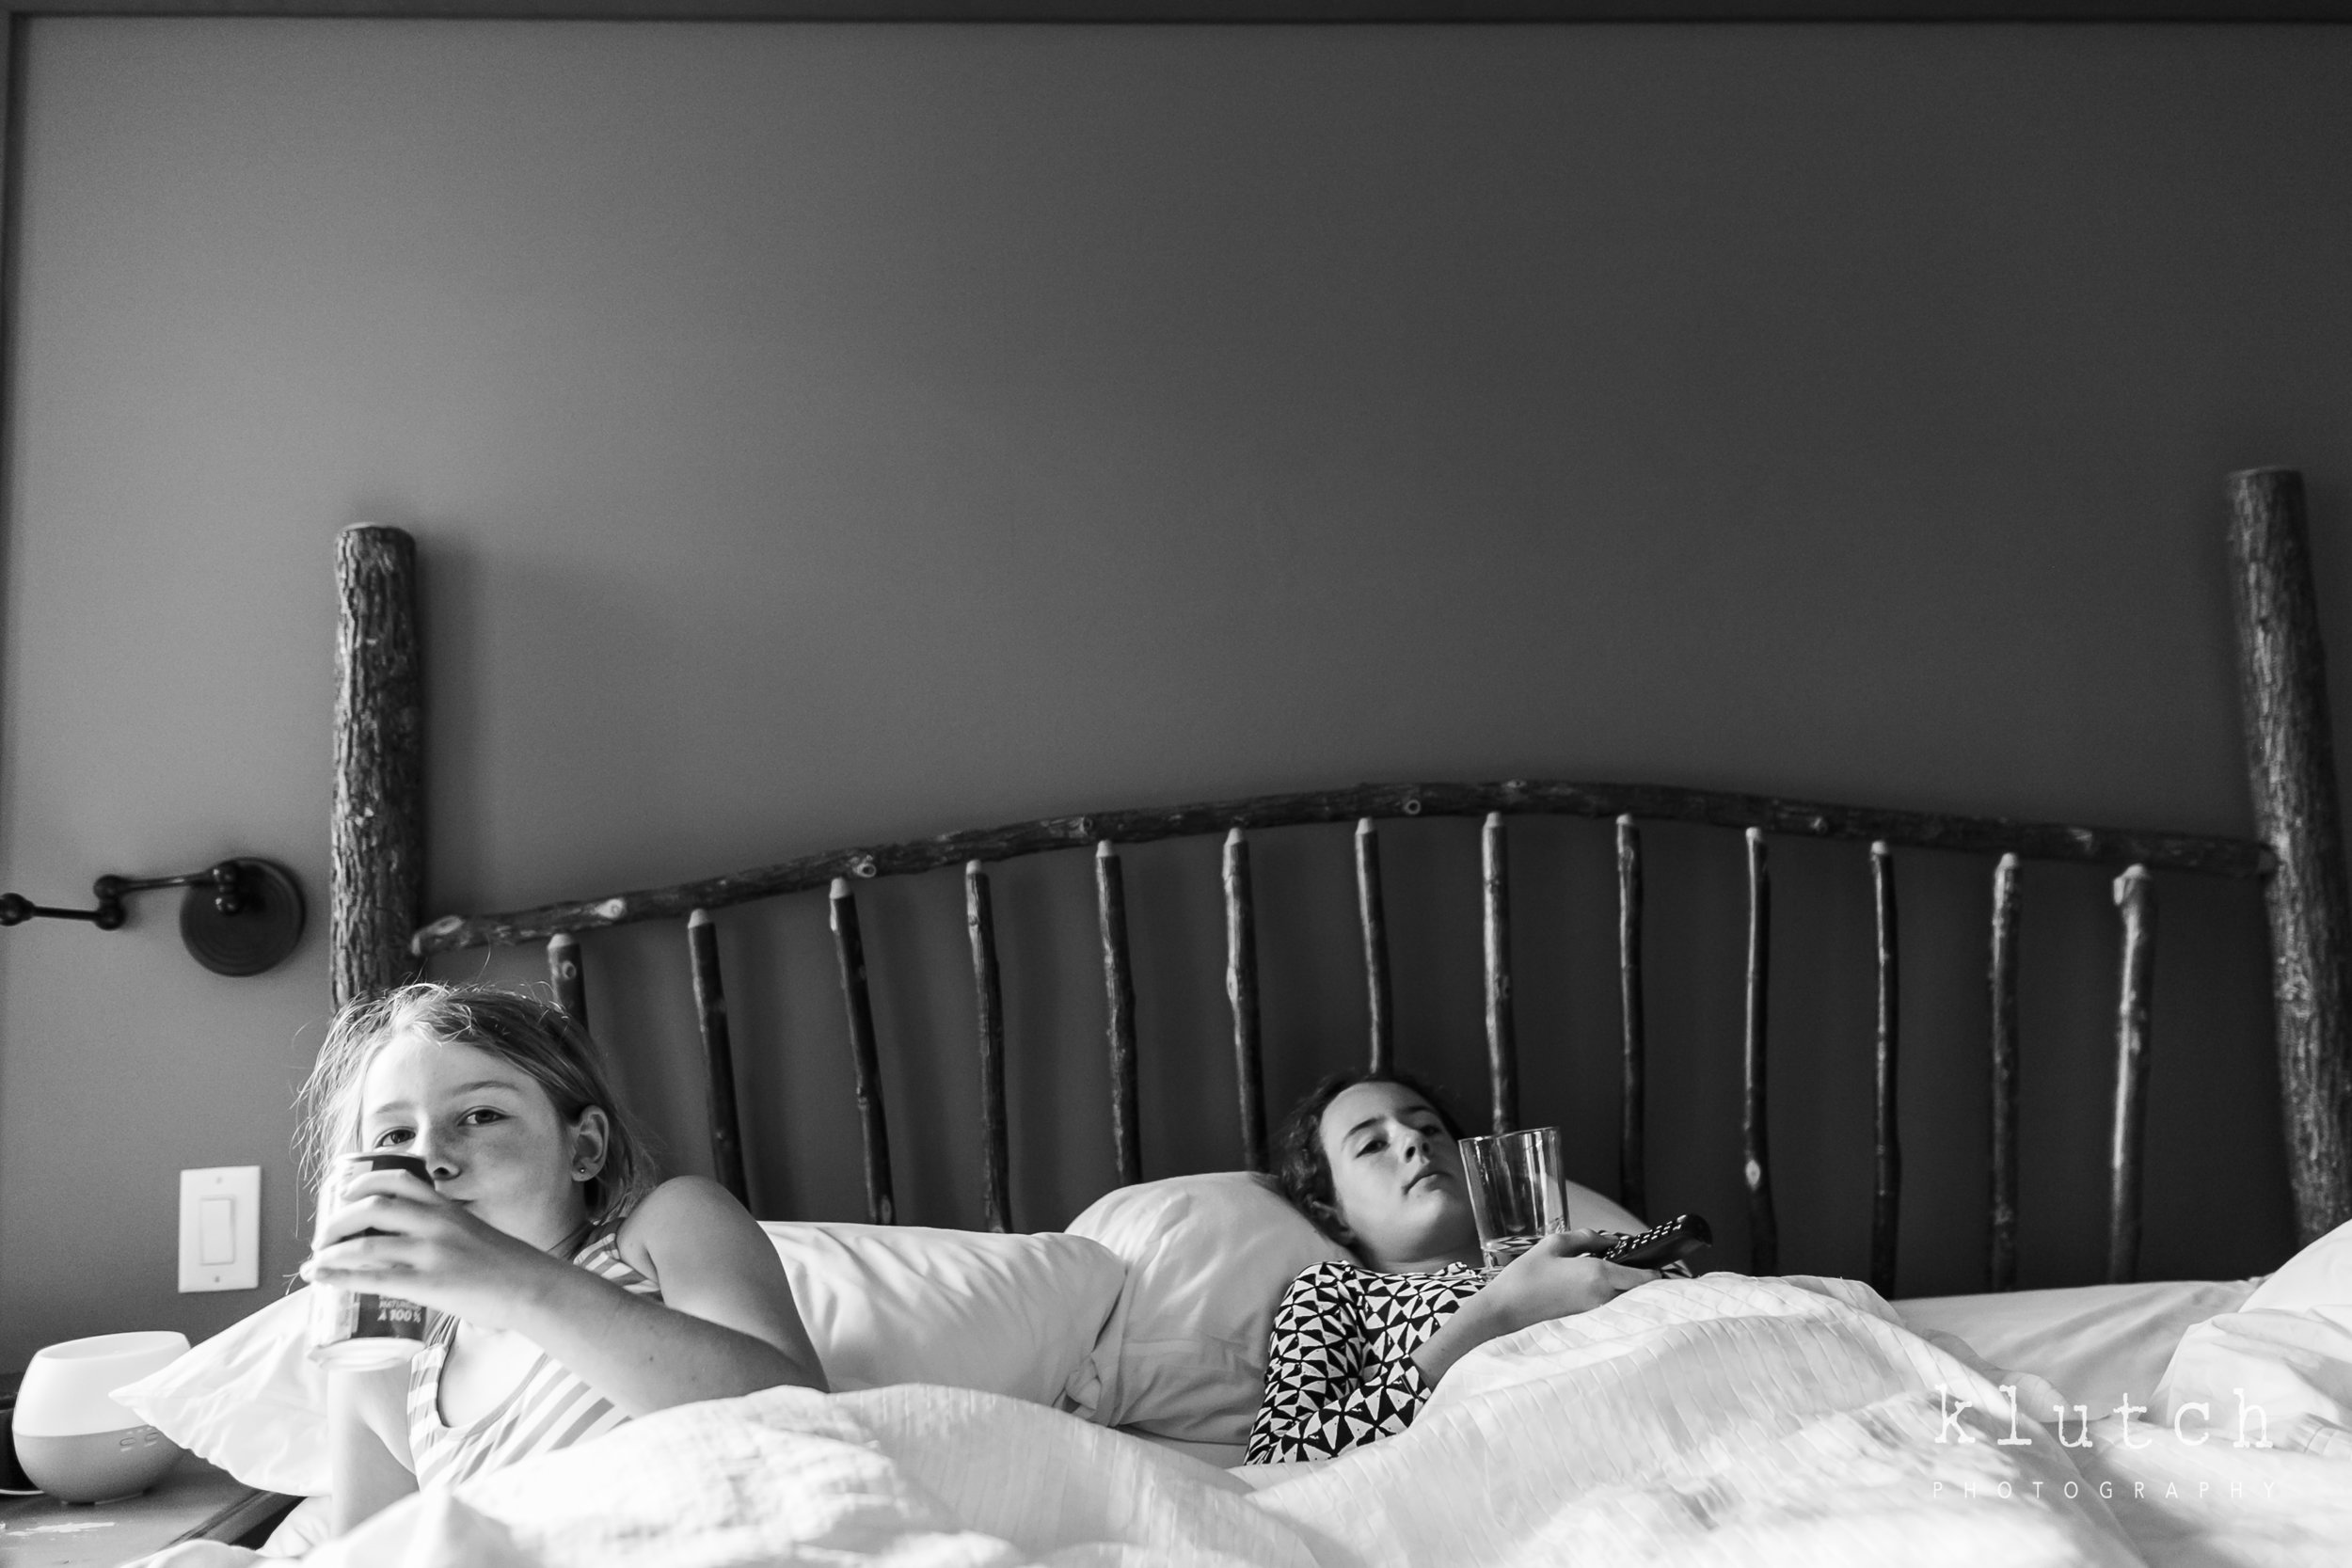 Surrey Family Photographer. Vancouver family photographer, klutch Photography, documentary photography, Vancouver documentary photographer, candid photography, lifestyle photographer, a day in the life session, family photography, Vancouver Photographer, Surrey Family Photographer, White Rock family Photographer, Dina Ferreira Stoddard-girl watching tv in bed-6062.jpg